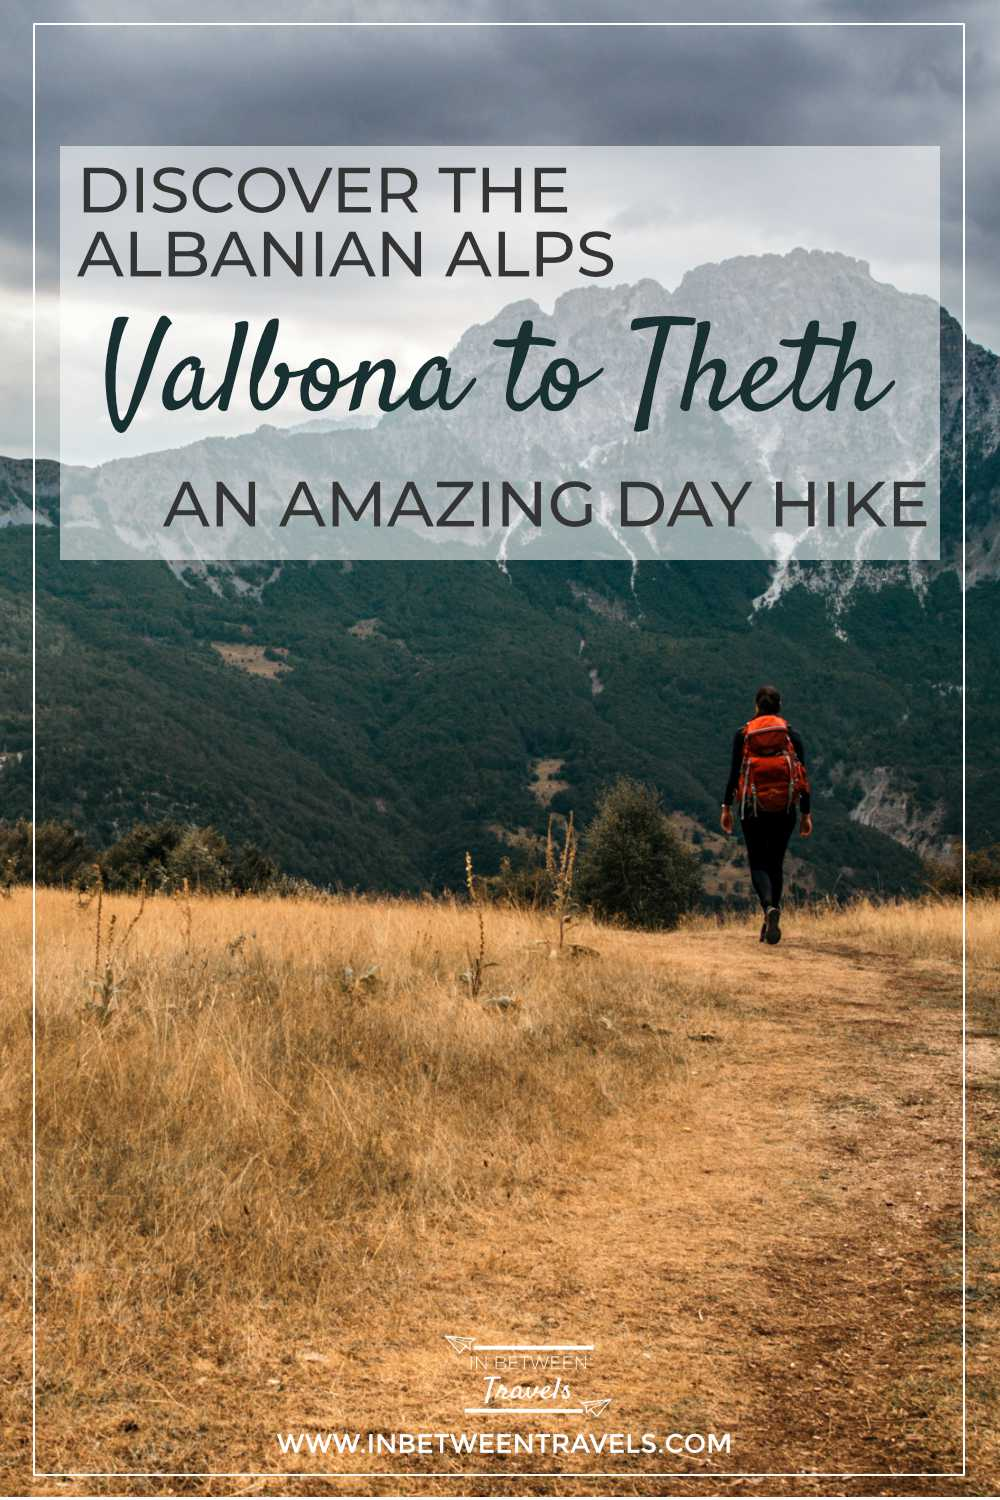 Valbona to Theth Day Hike